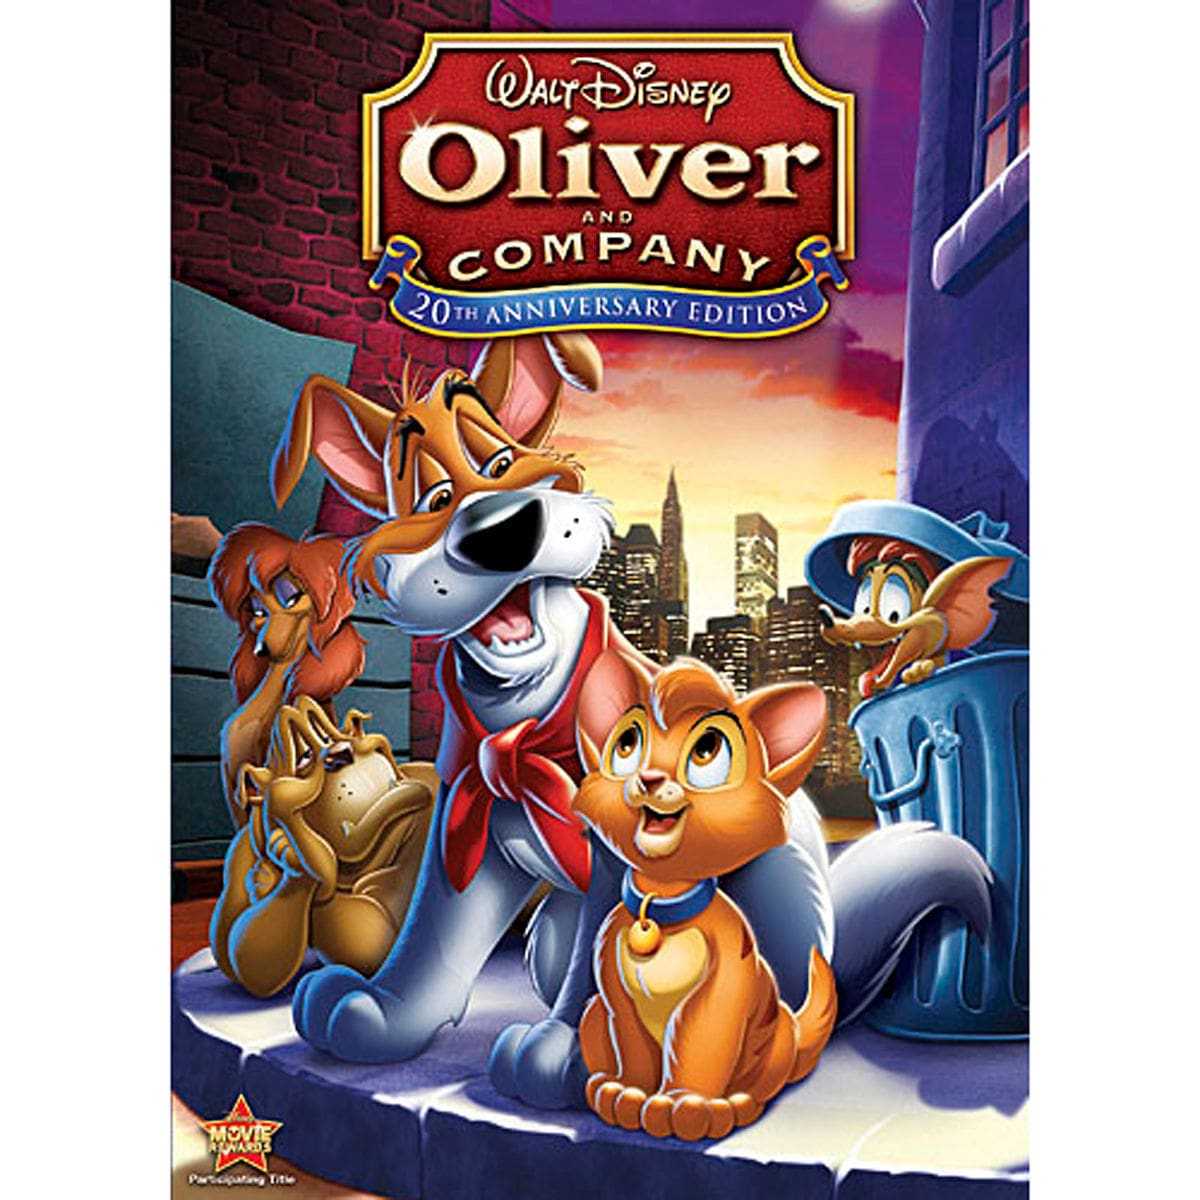 Oliver and Company DVD   shopDisney